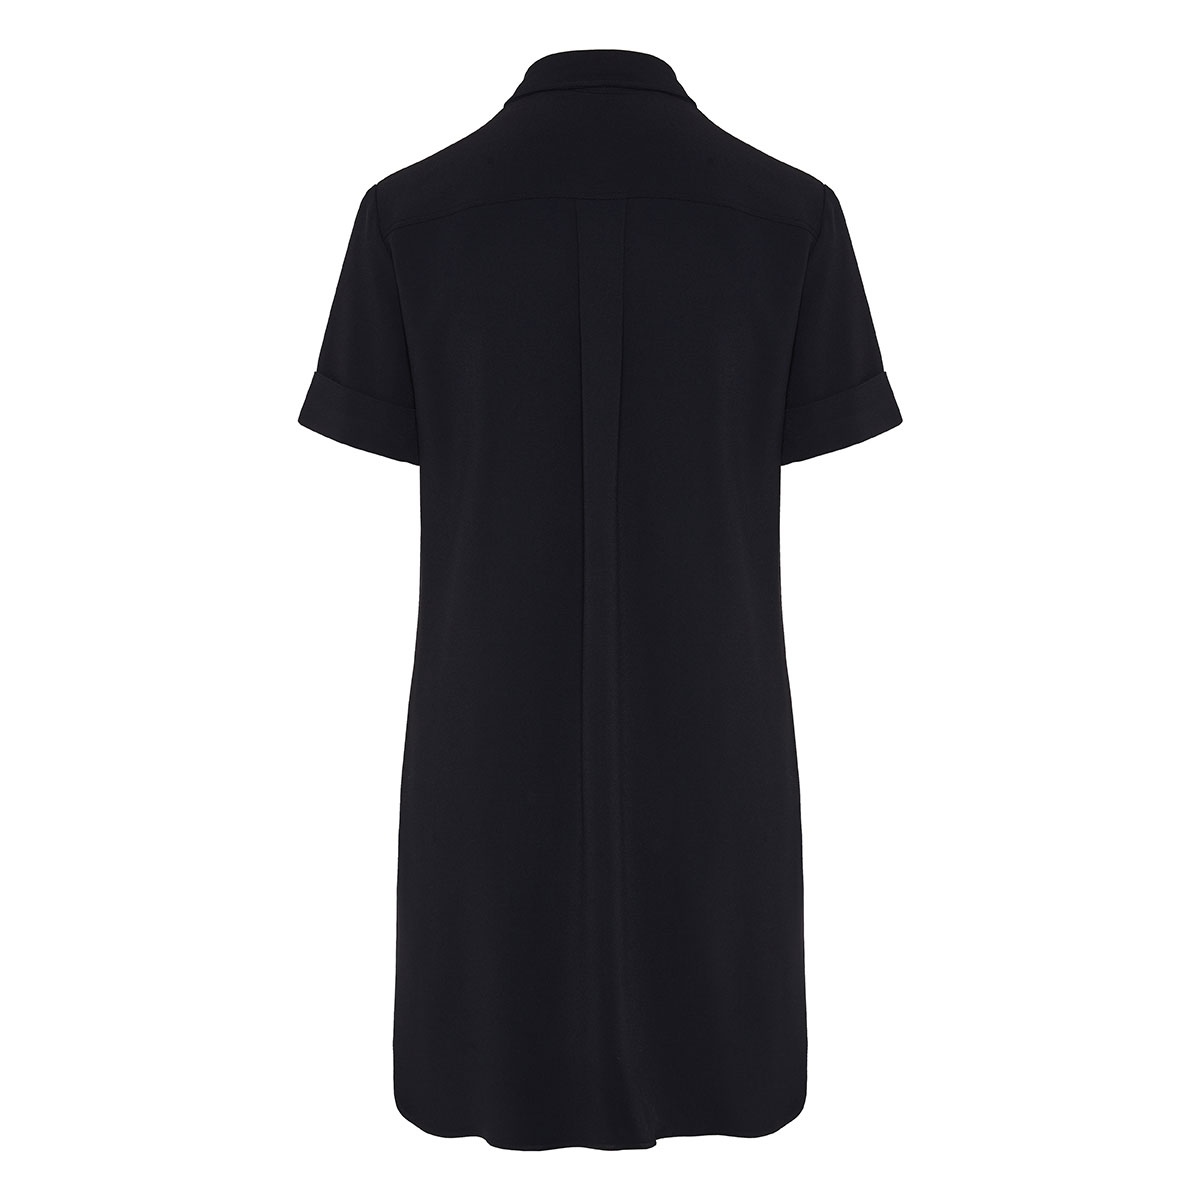 Shirt dress with jeweled buttons